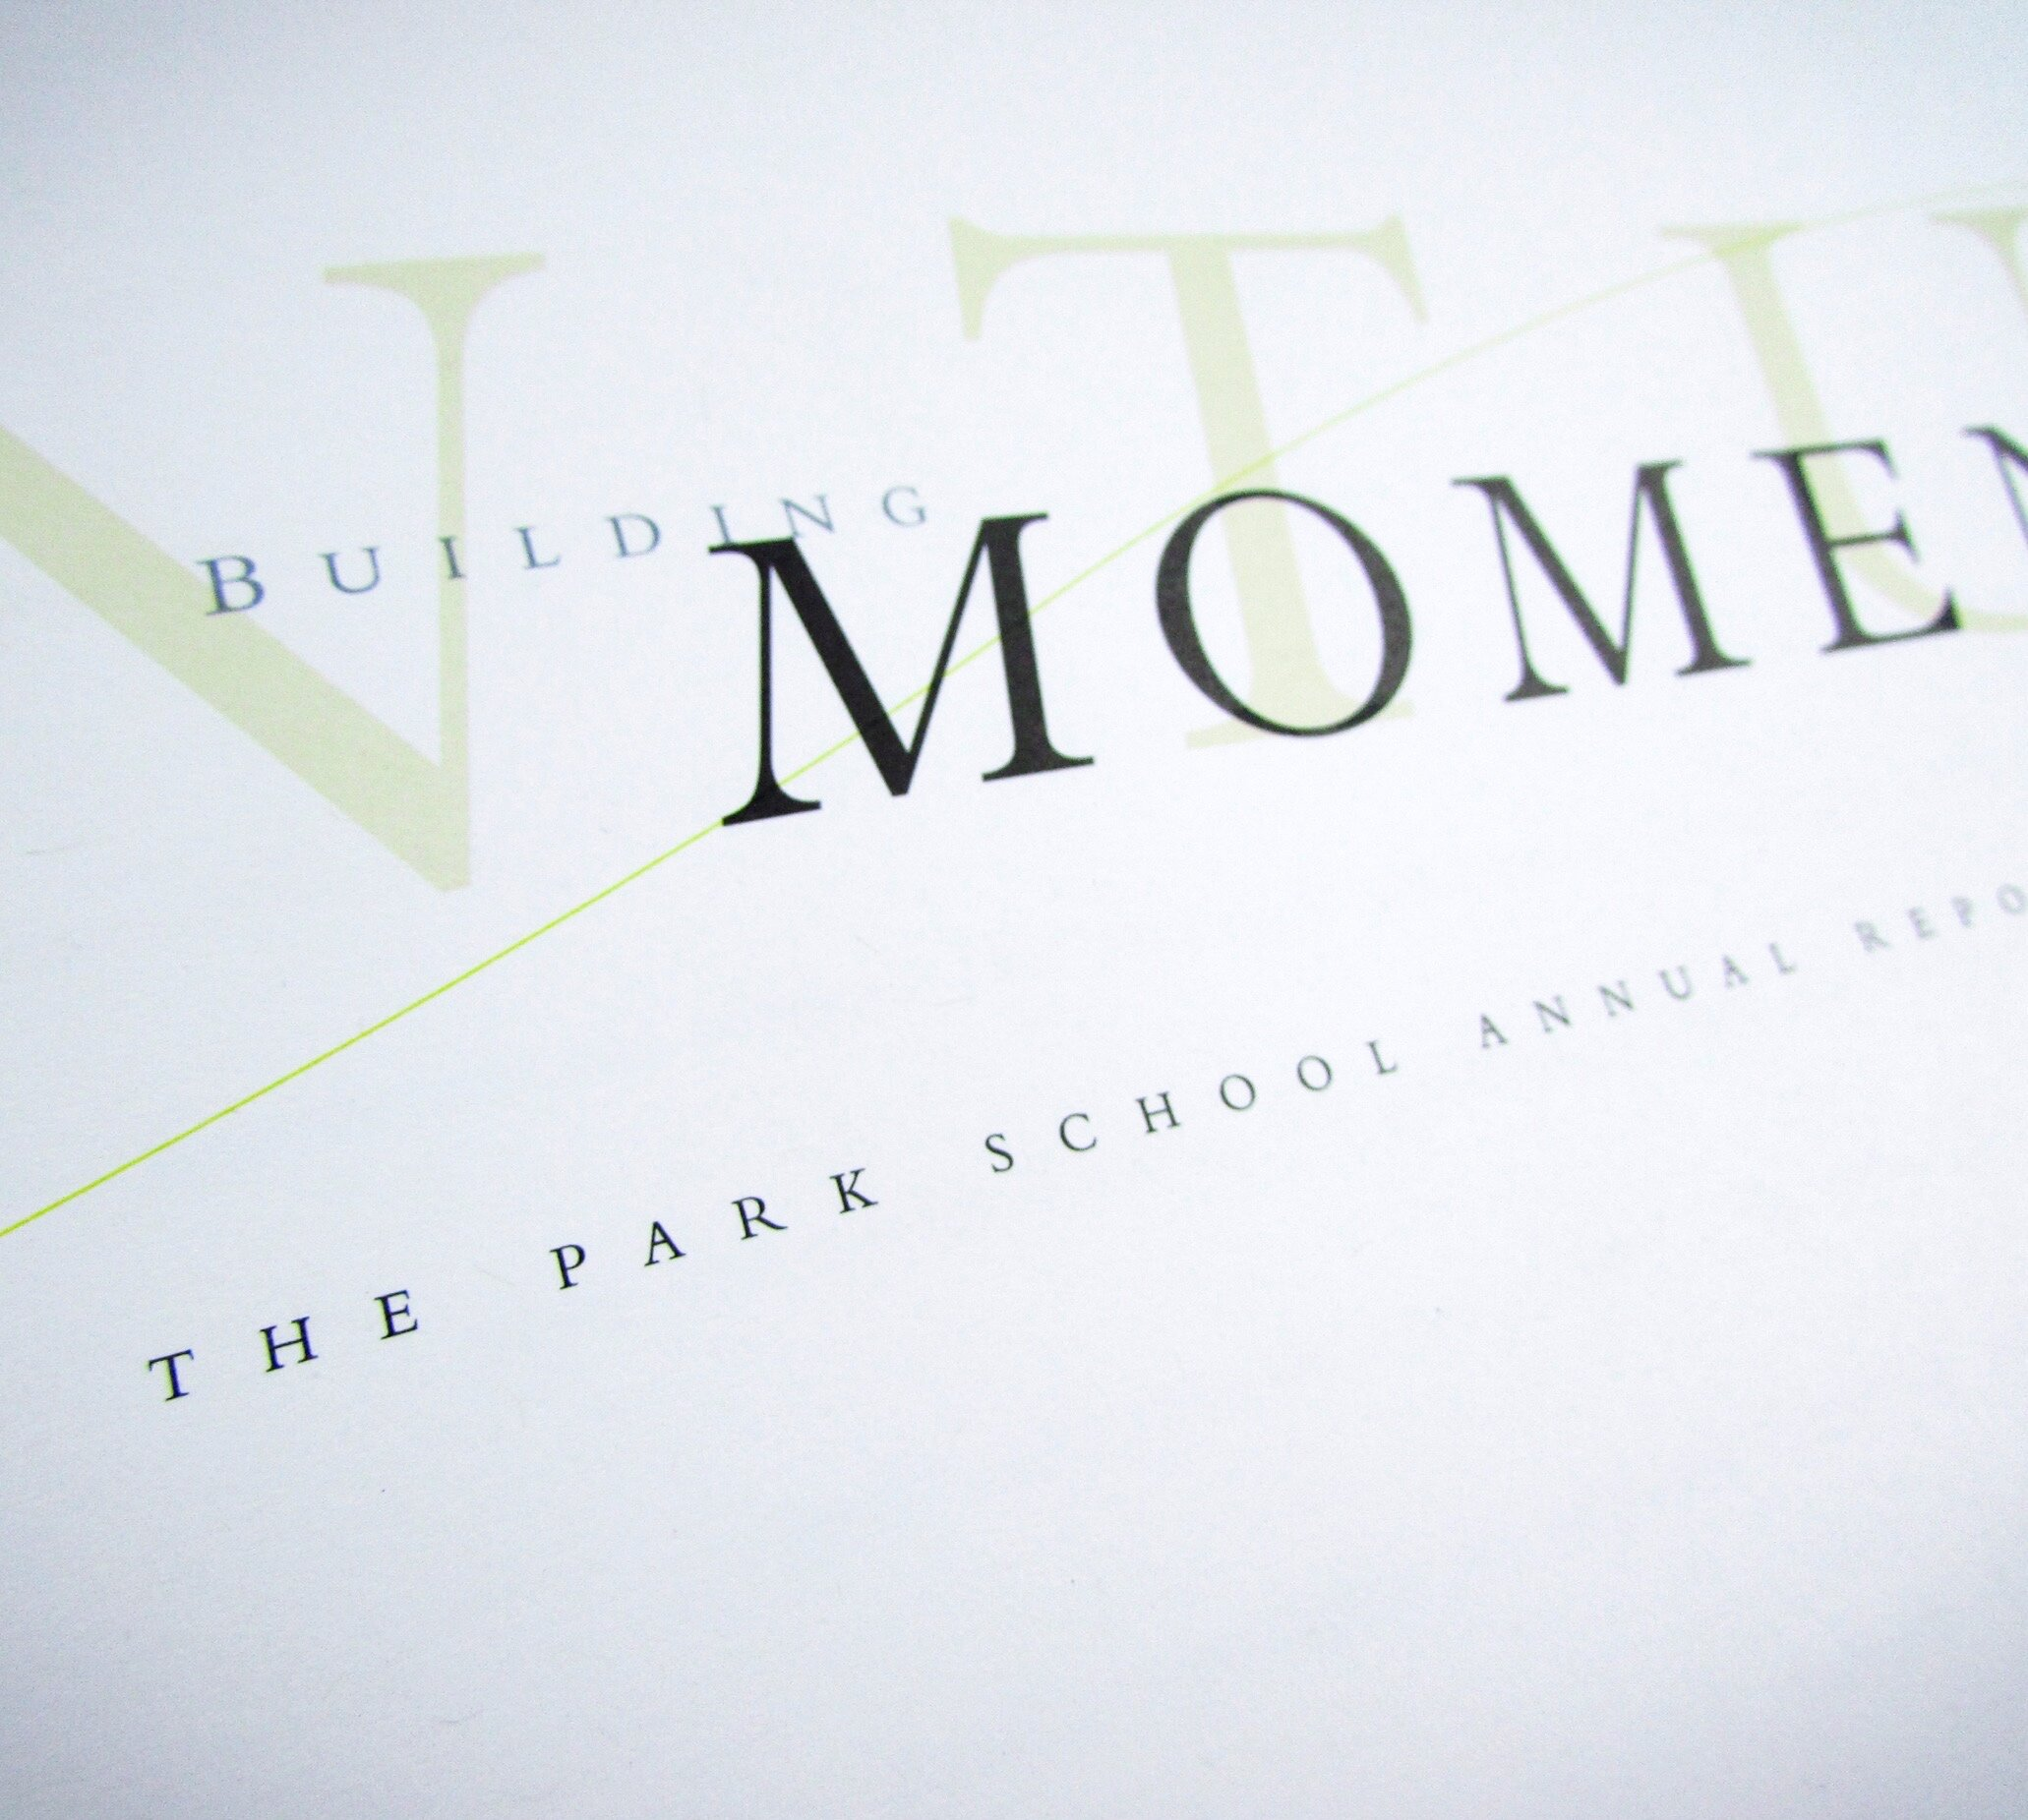 The Park School - Building Momentum Annual Report